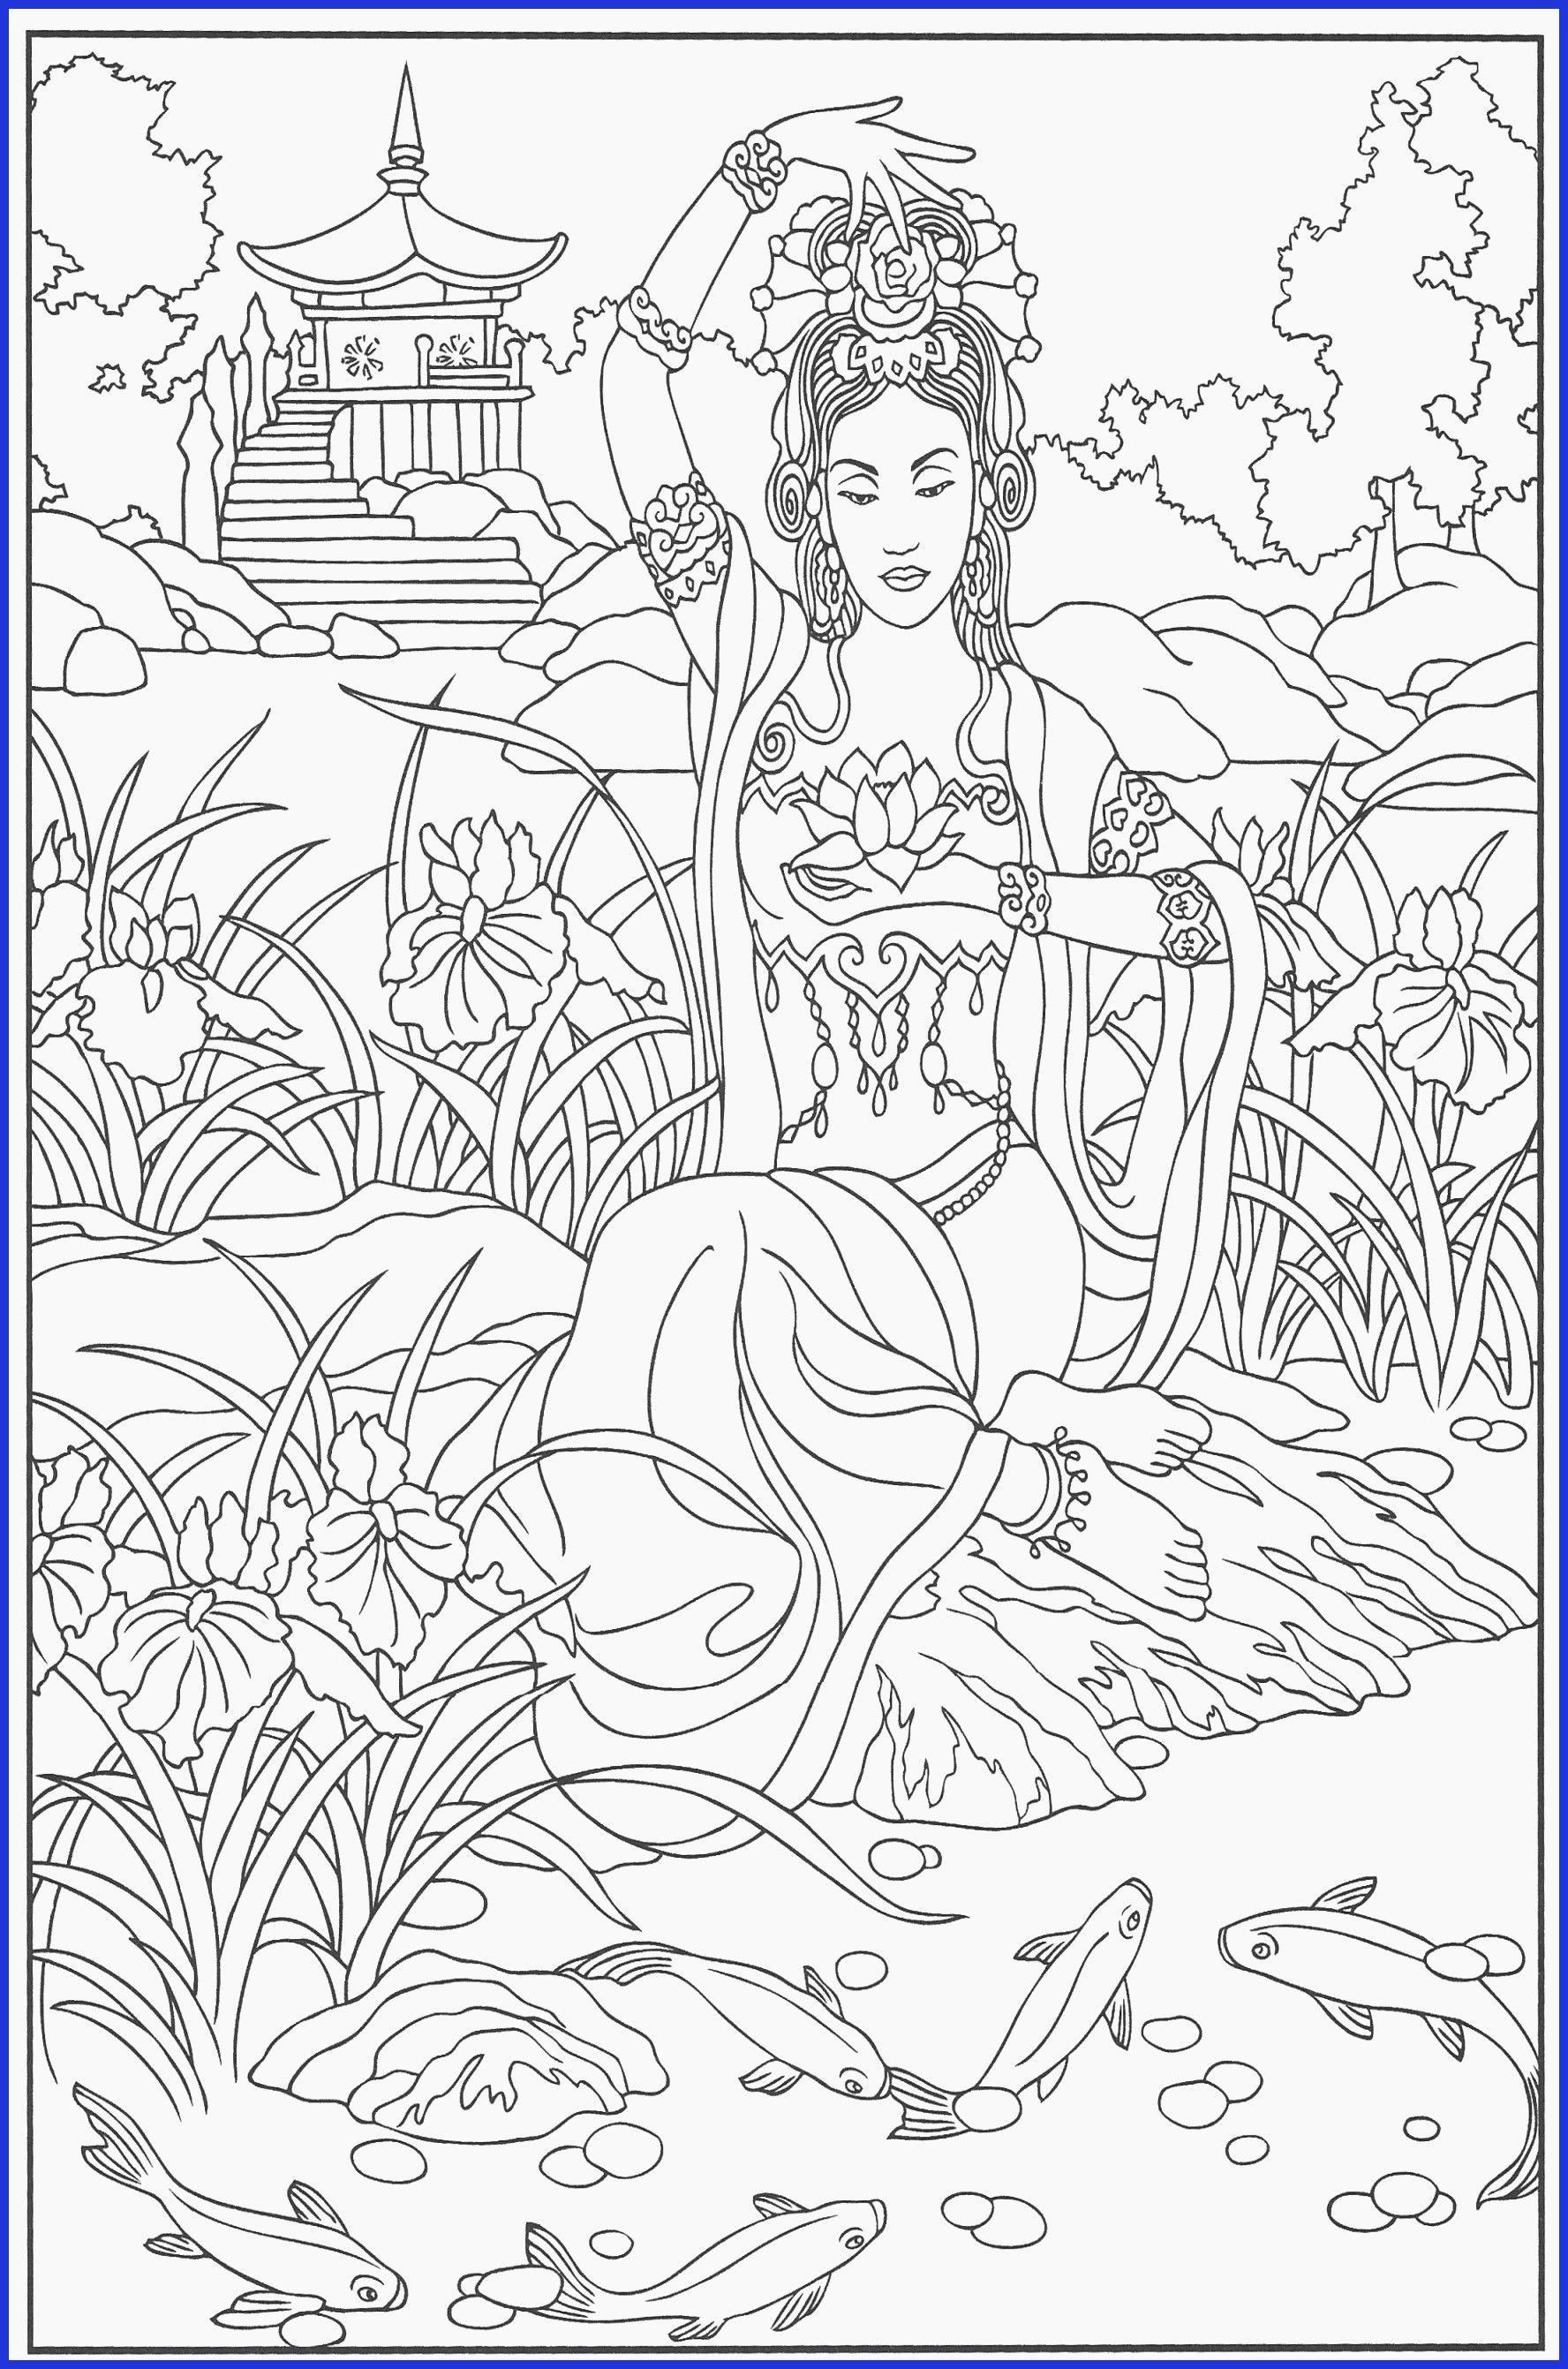 Coloring Pages Of Crayons Unique Ghostbusters Coloring